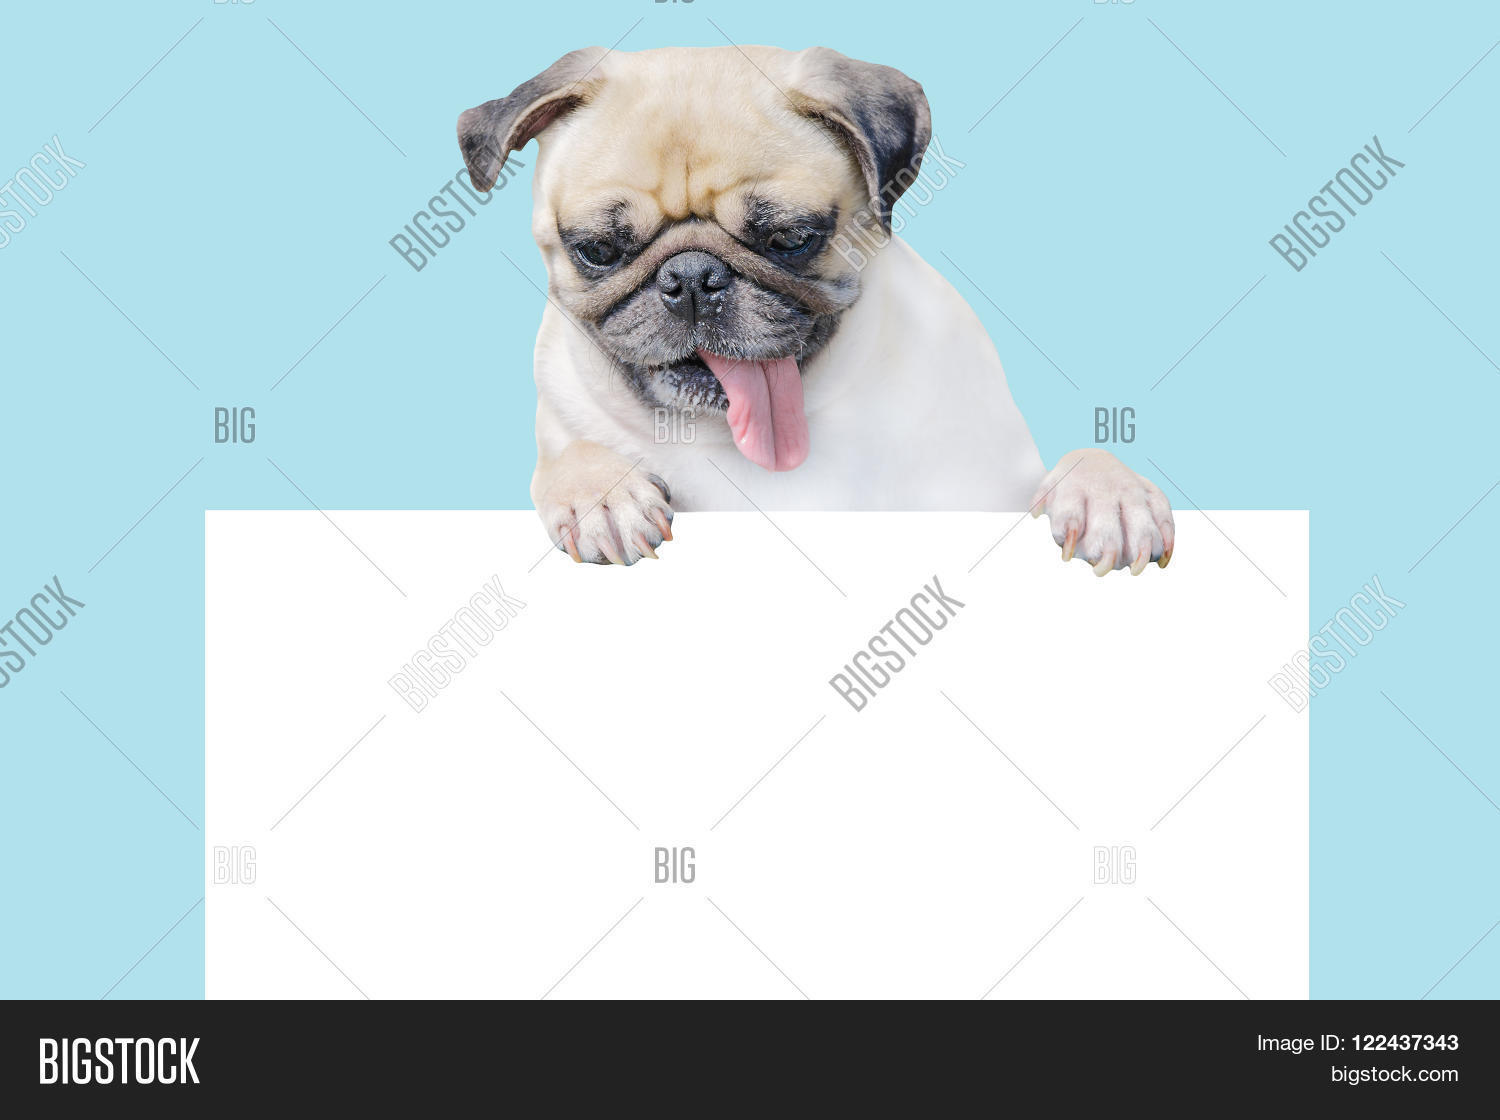 Cute Puppy Dog Pug Image Photo Free Trial Bigstock - Dog gift certificate template free